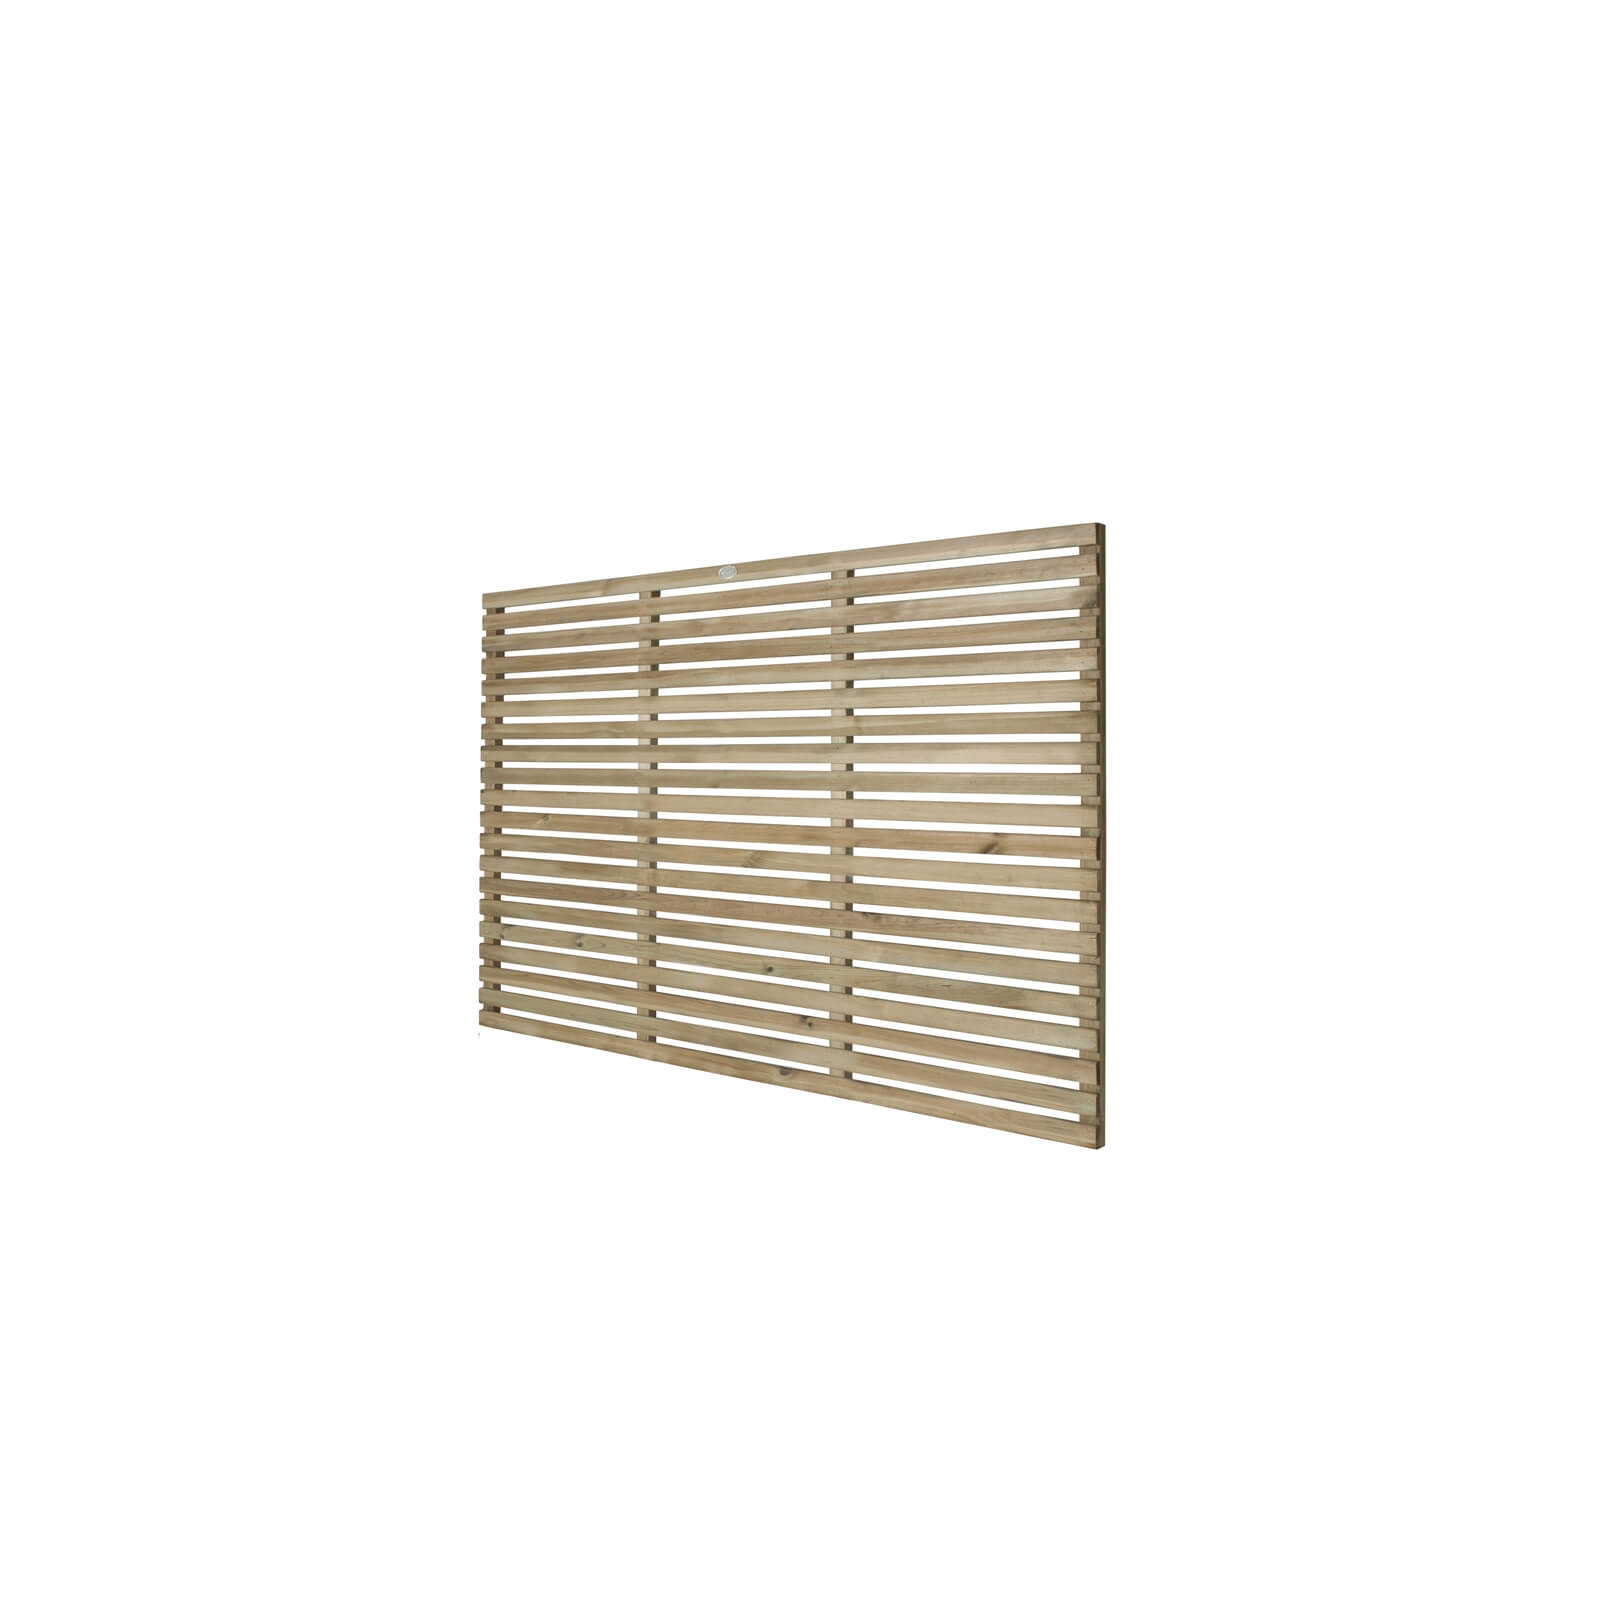 6ft x 4ft (1.8m x 1.2m) Pressure Treated Contemporary Slatted Fence Panel - Pack of 4